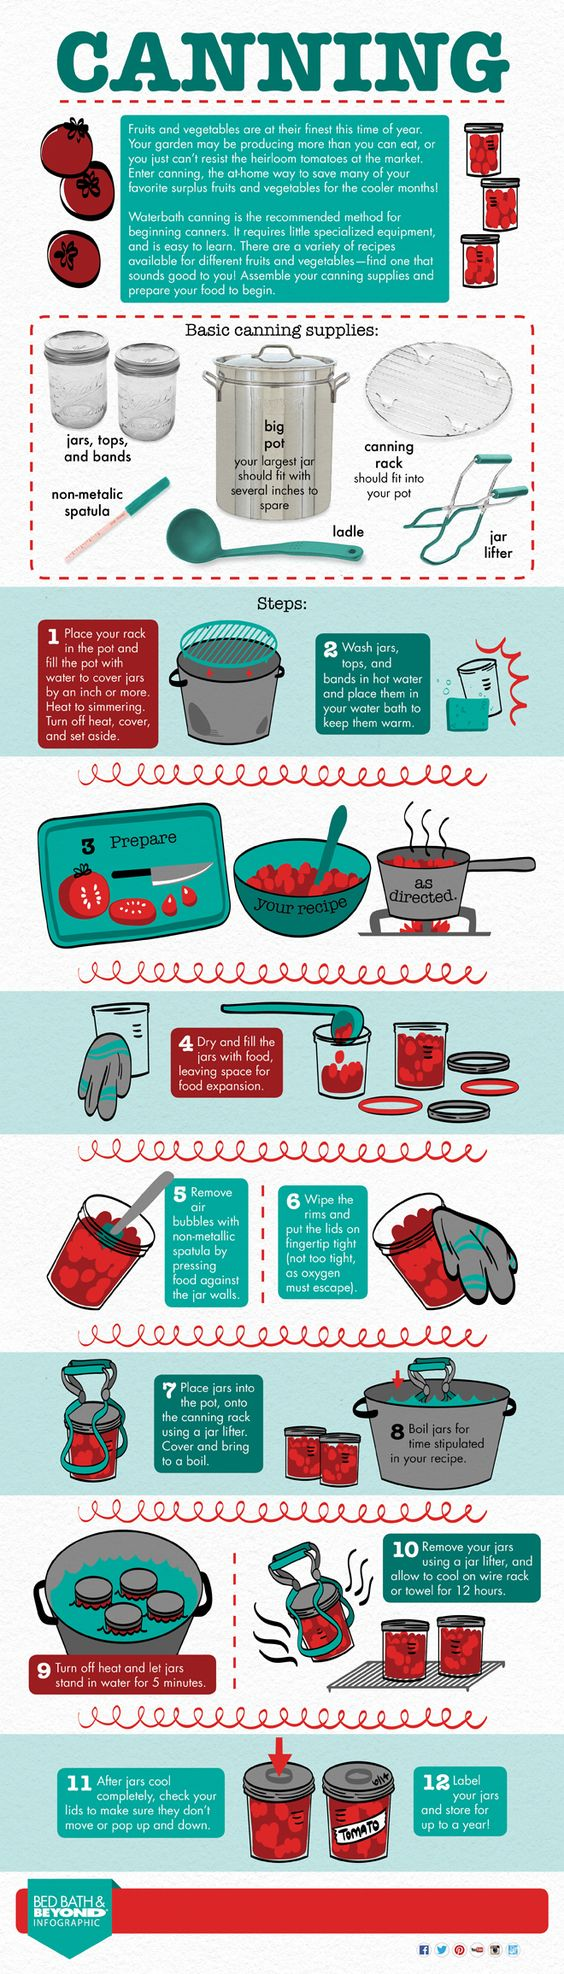 Everything you need to know about canning in an infographic!